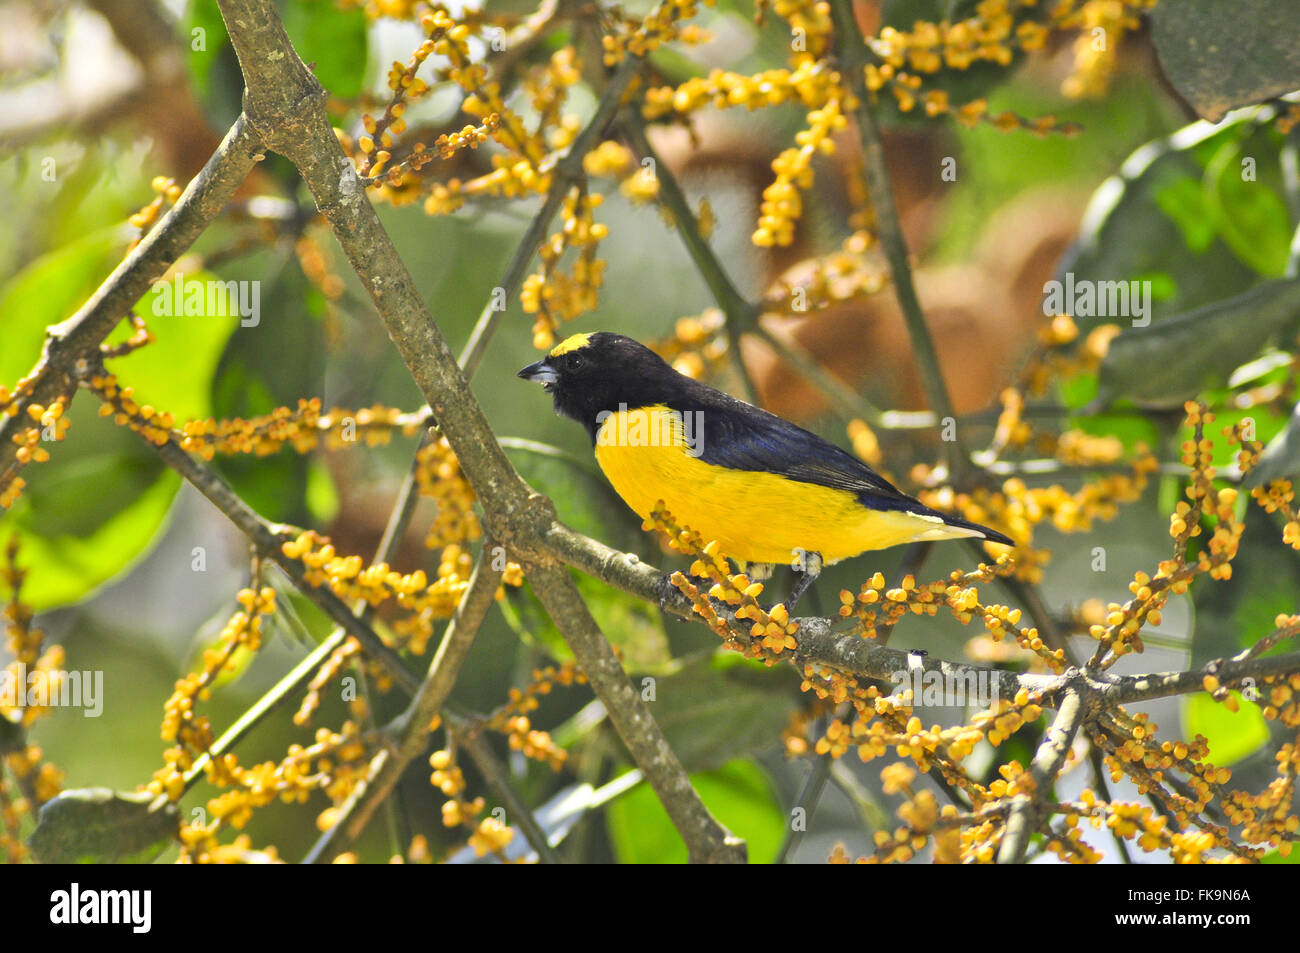 End-bird weekend - family Fringillidae - chlorotica Euphonia - Stock Image